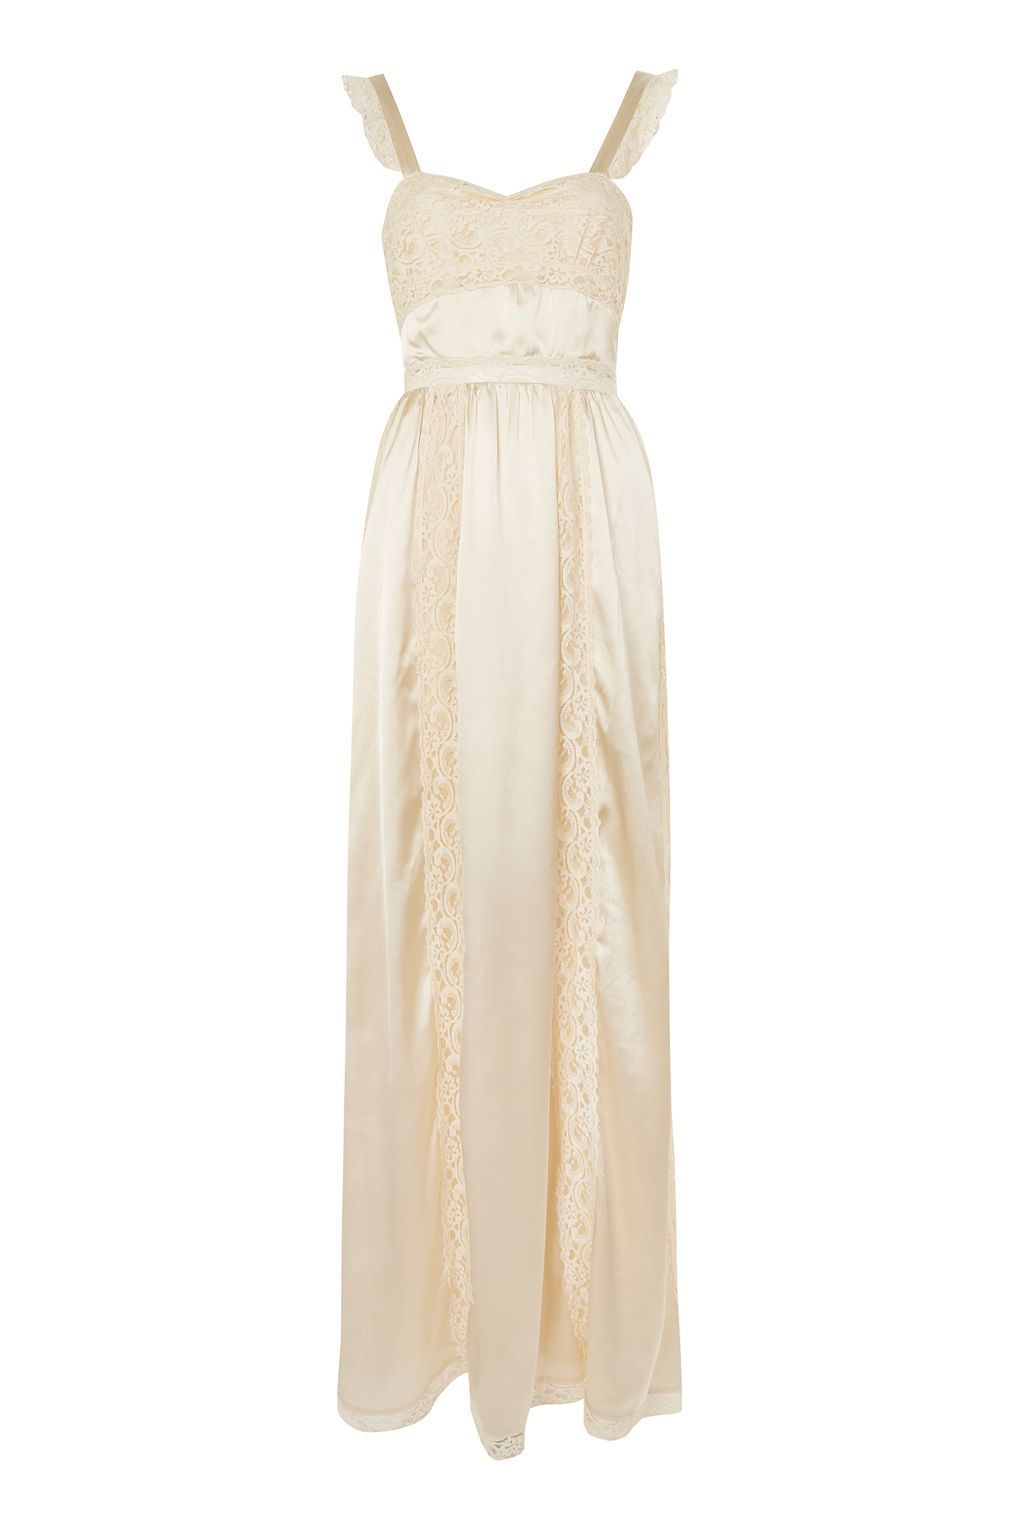 Topshop Lace Maxi Dress Summer Long Prom Wedding Evening Party Sleeveless